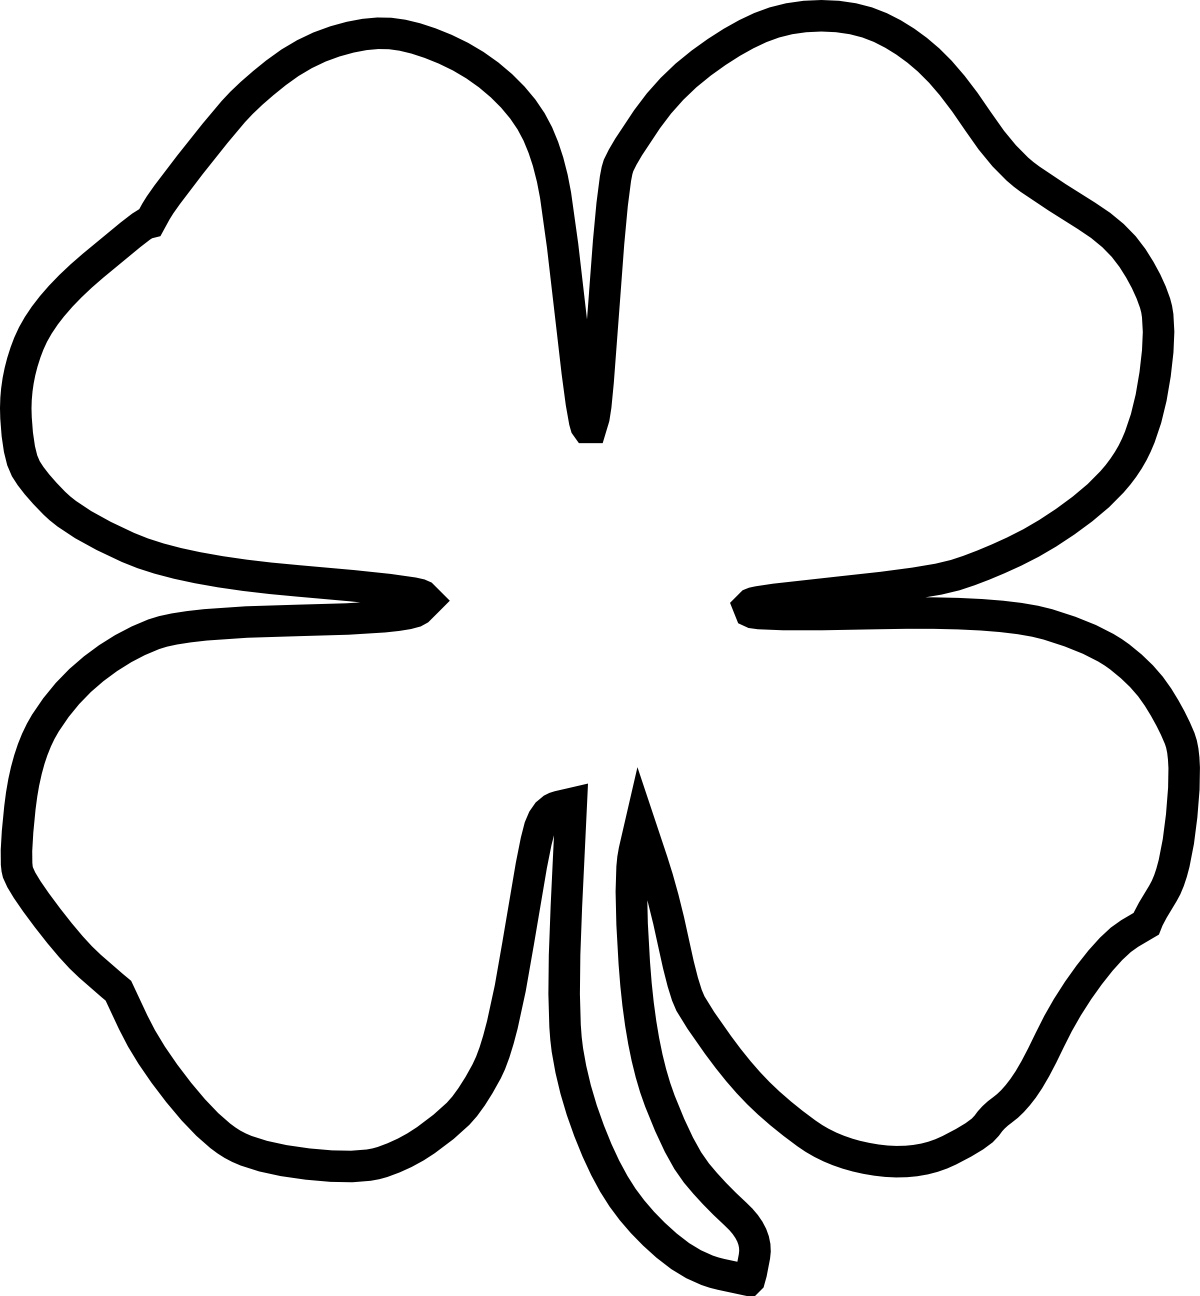 Four Leaf Clover Border Vector Ai And Eps Downloads